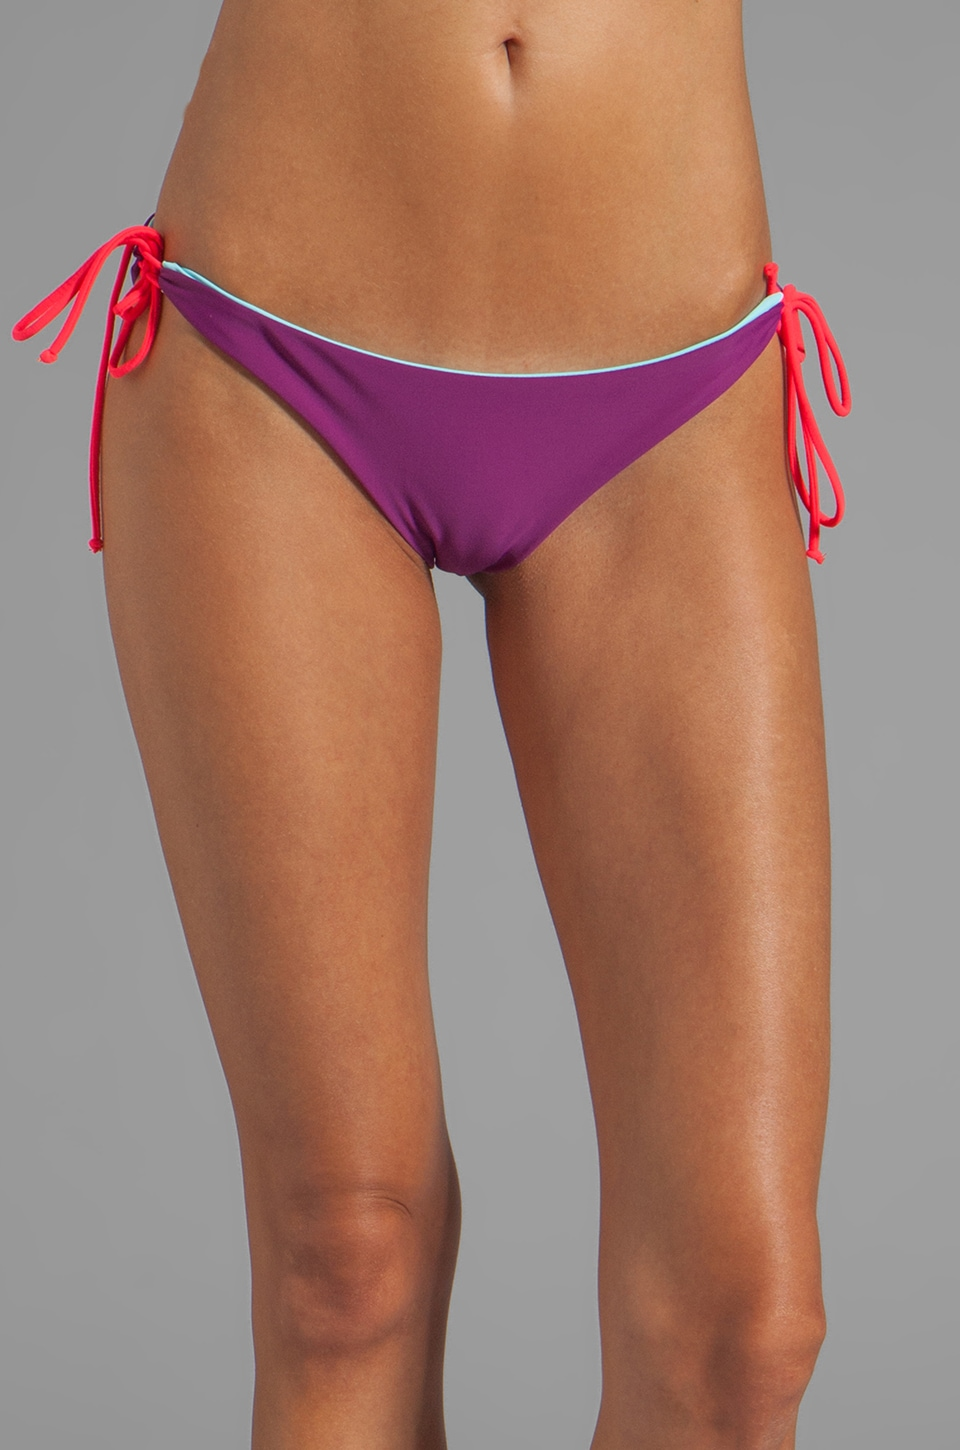 Basta Surf Kikitas Reversible Ruched Bottom in Sailing/Eggplant/Bunny